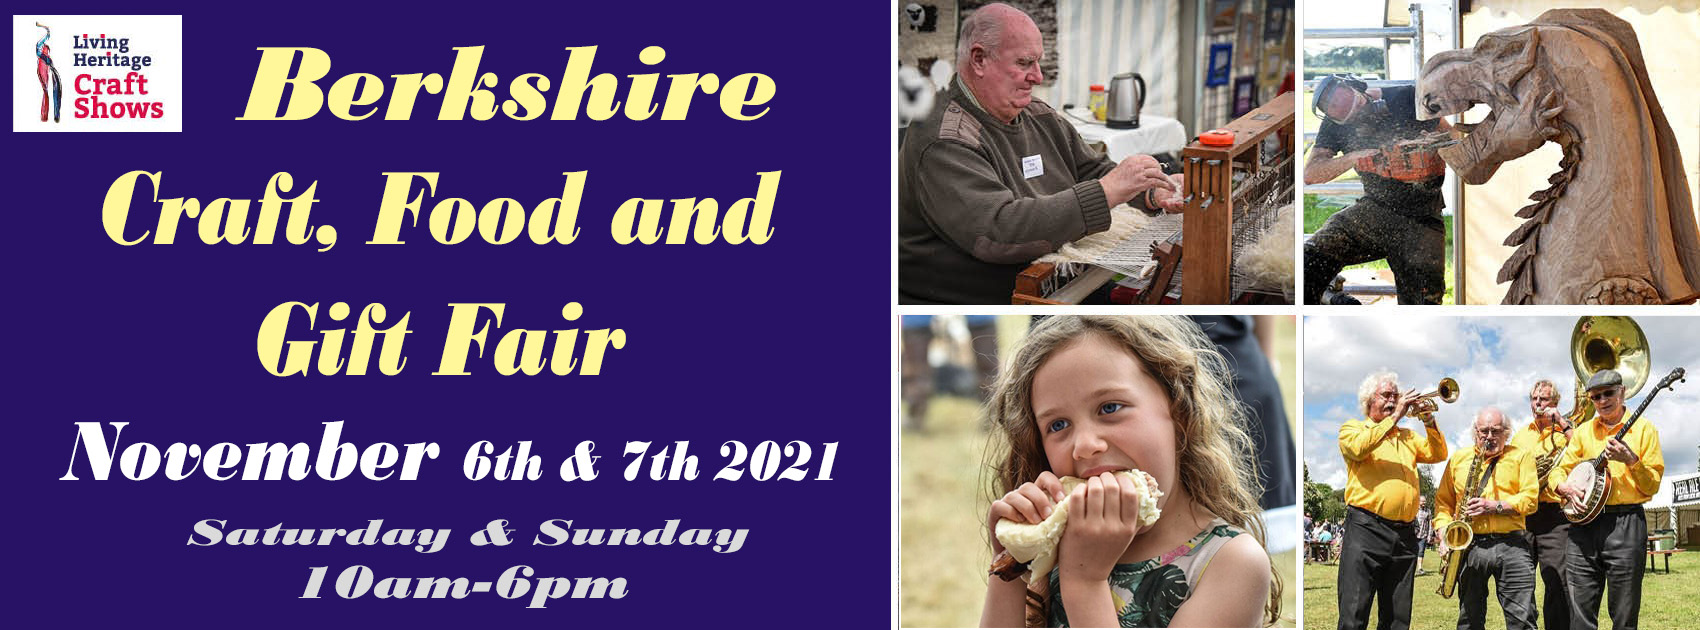 Berkshire Craft, Food and Gift Fair